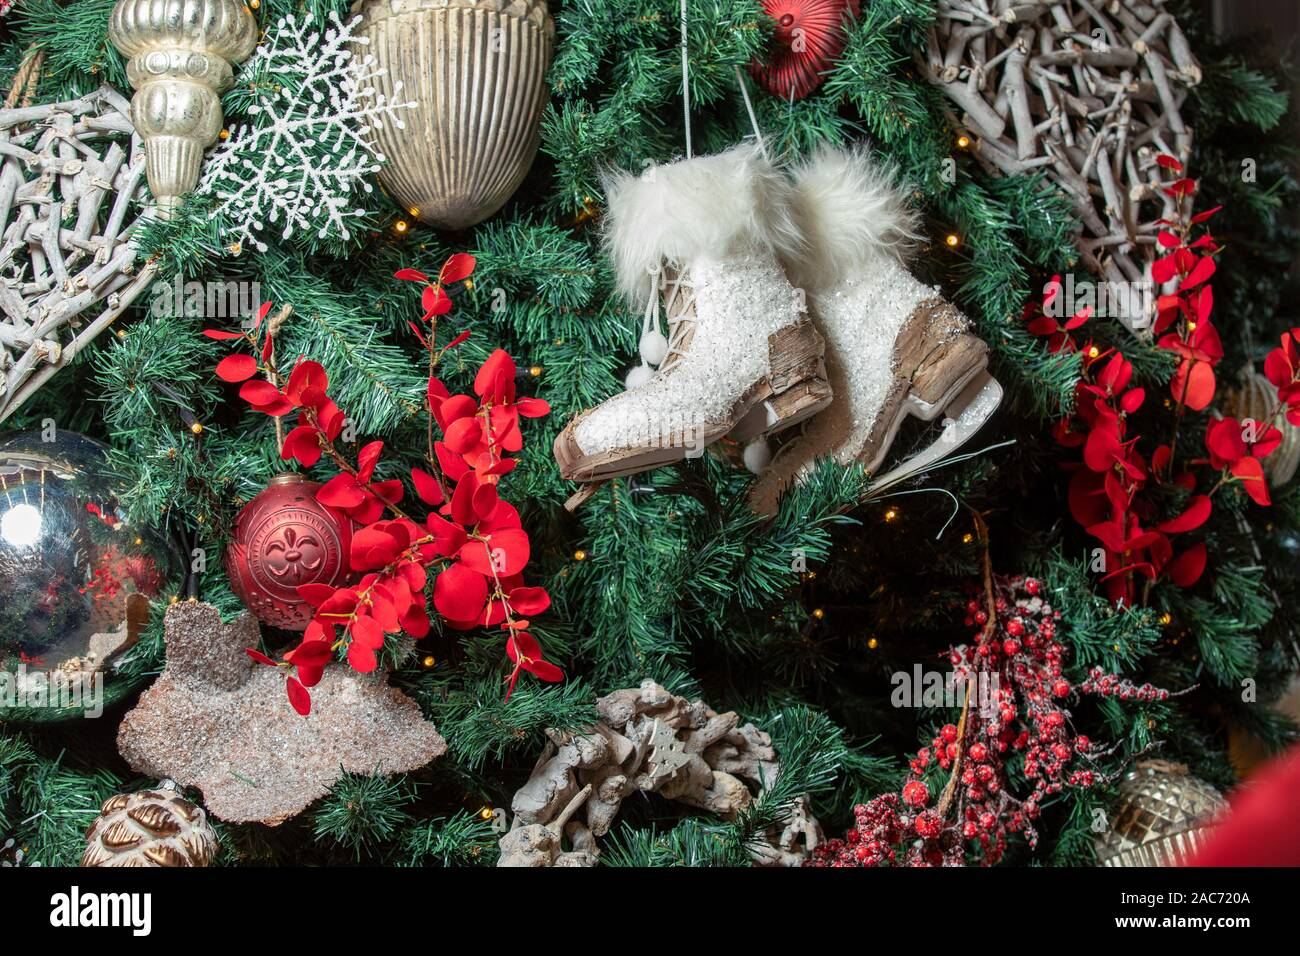 Vintage Christmas Tree Decorations On A Christmas Fur Tree Stock Photo Alamy